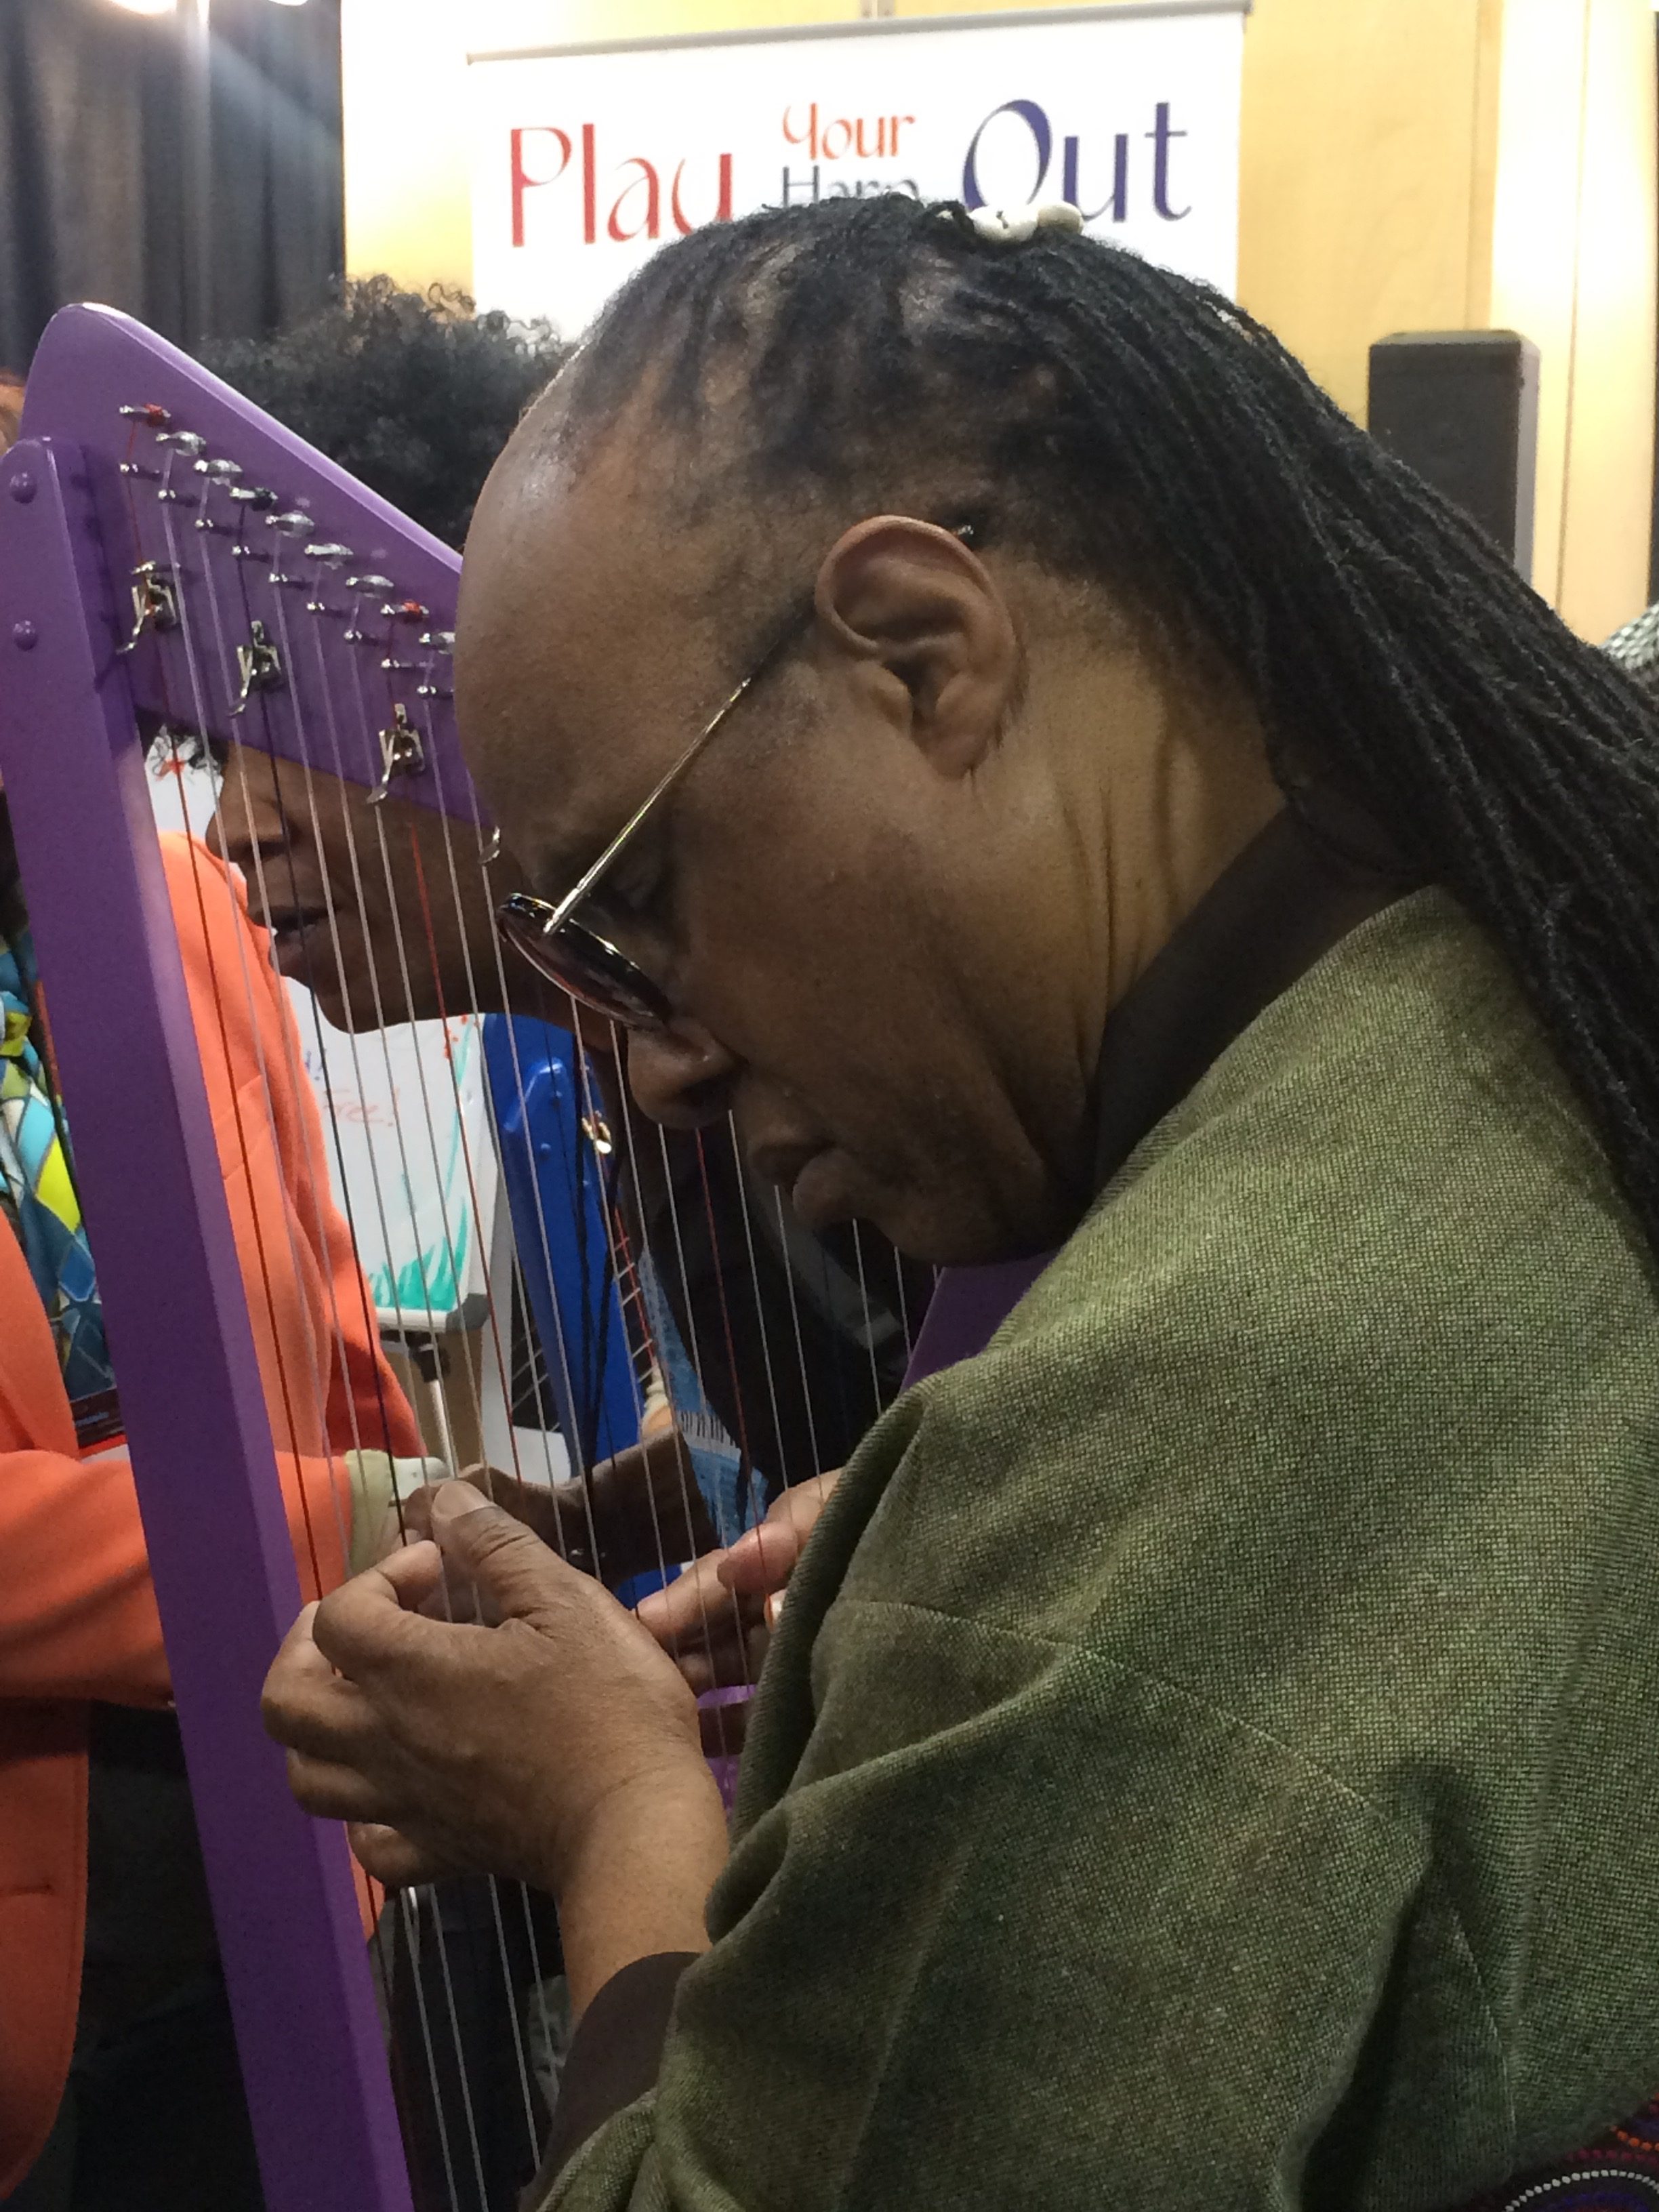 Stevie Wonder at NAMM 2016 before deciding to order harps.